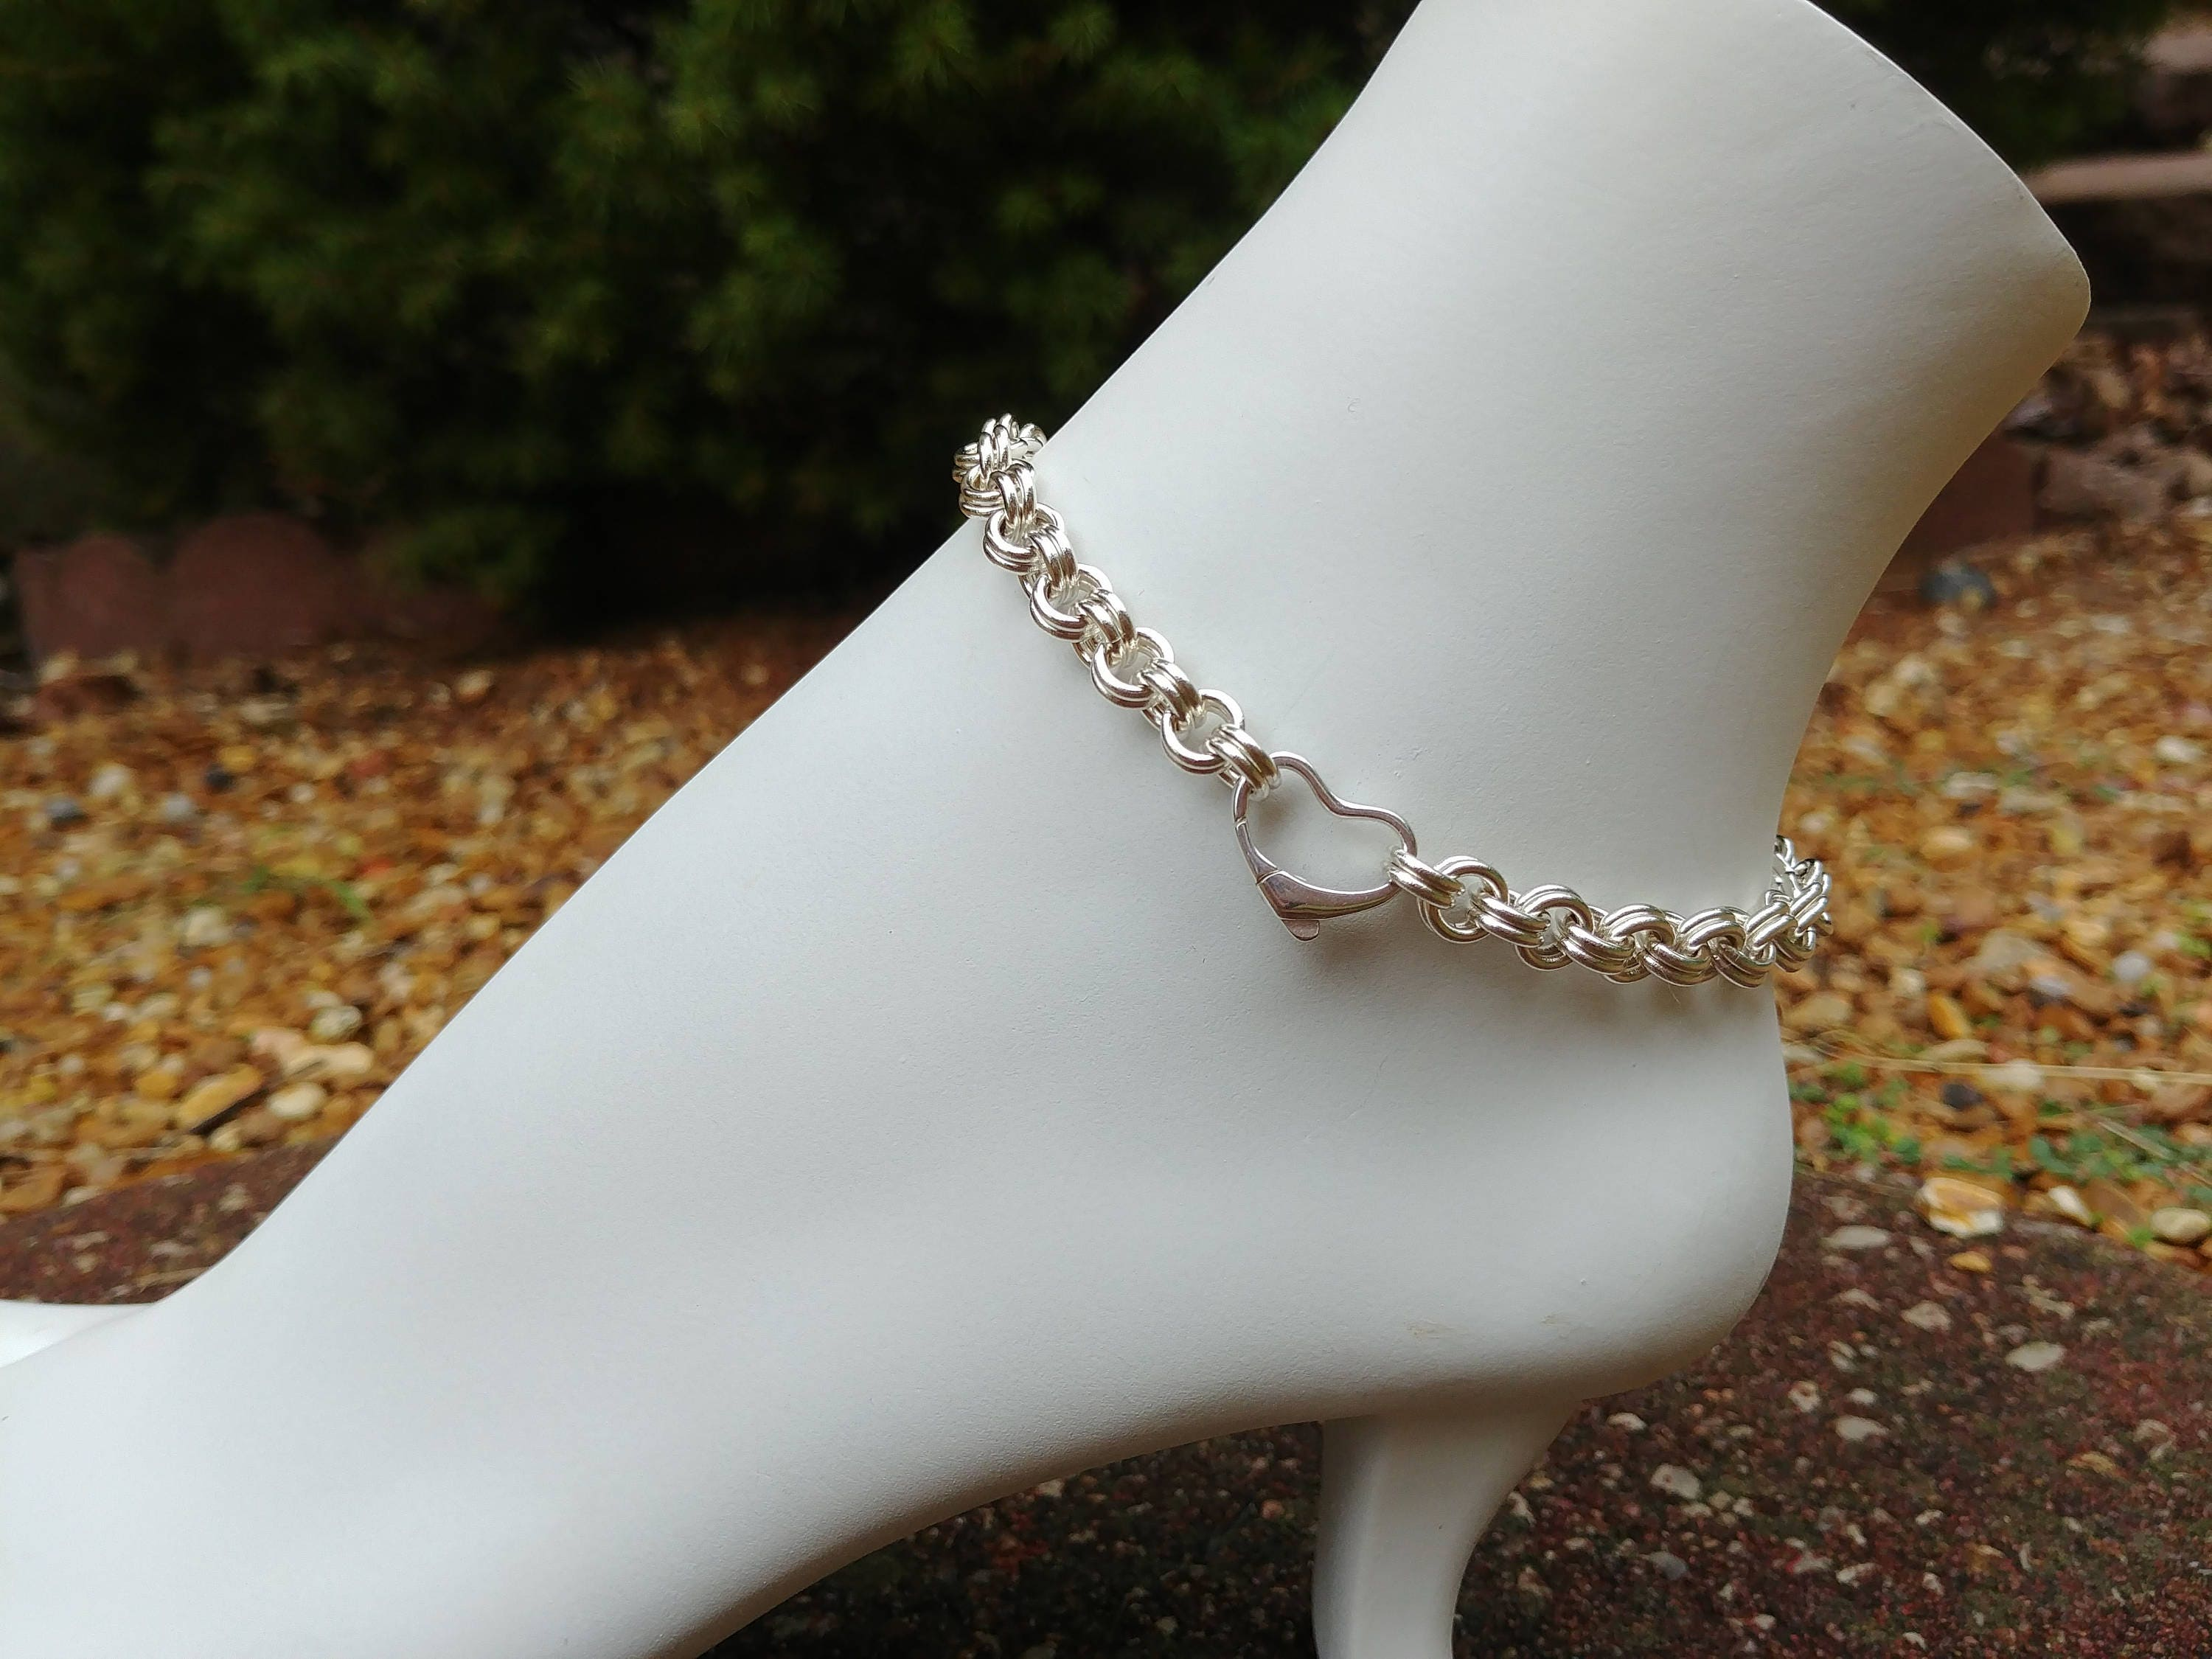 bracelet sweetie london links anklet xs us sterling of silver hires heart en